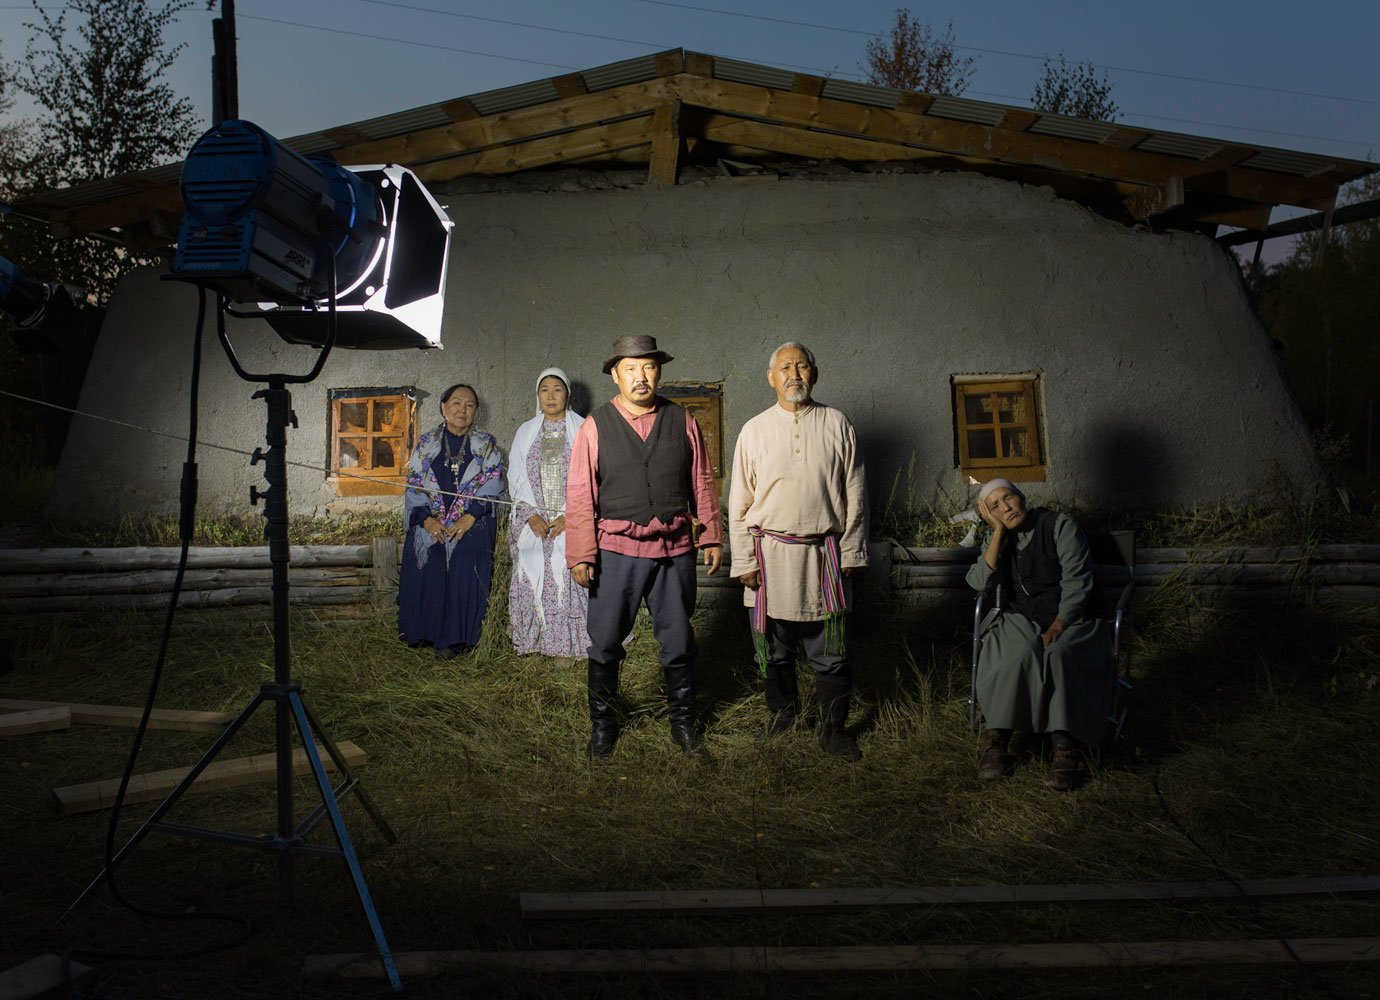 In Yakutia, movie-making is big business. Alexey Vasilyev photographs the visionaries behind it